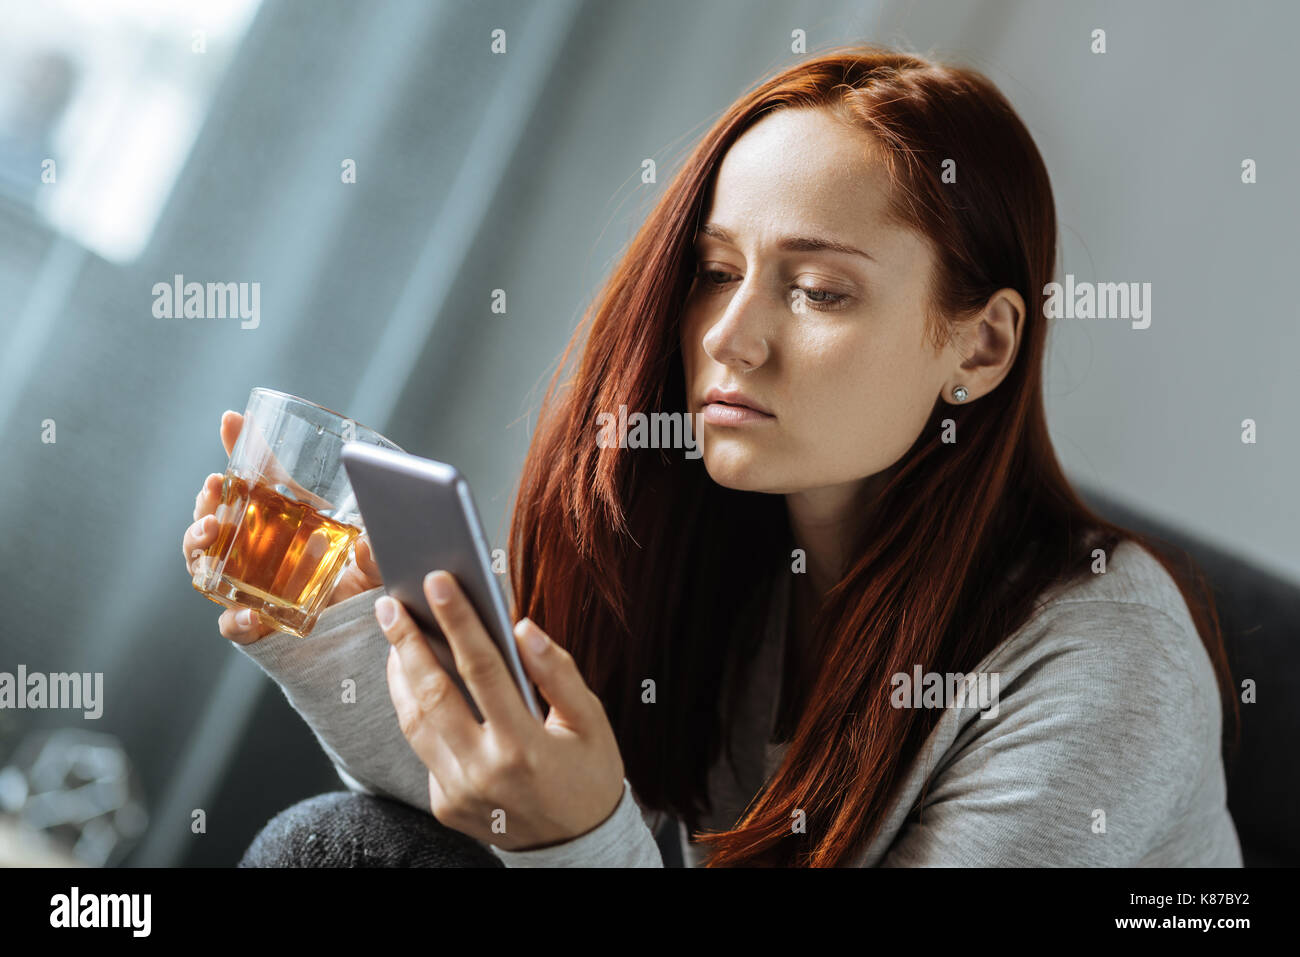 Pleasant sad woman holding a glass of whisky - Stock Image